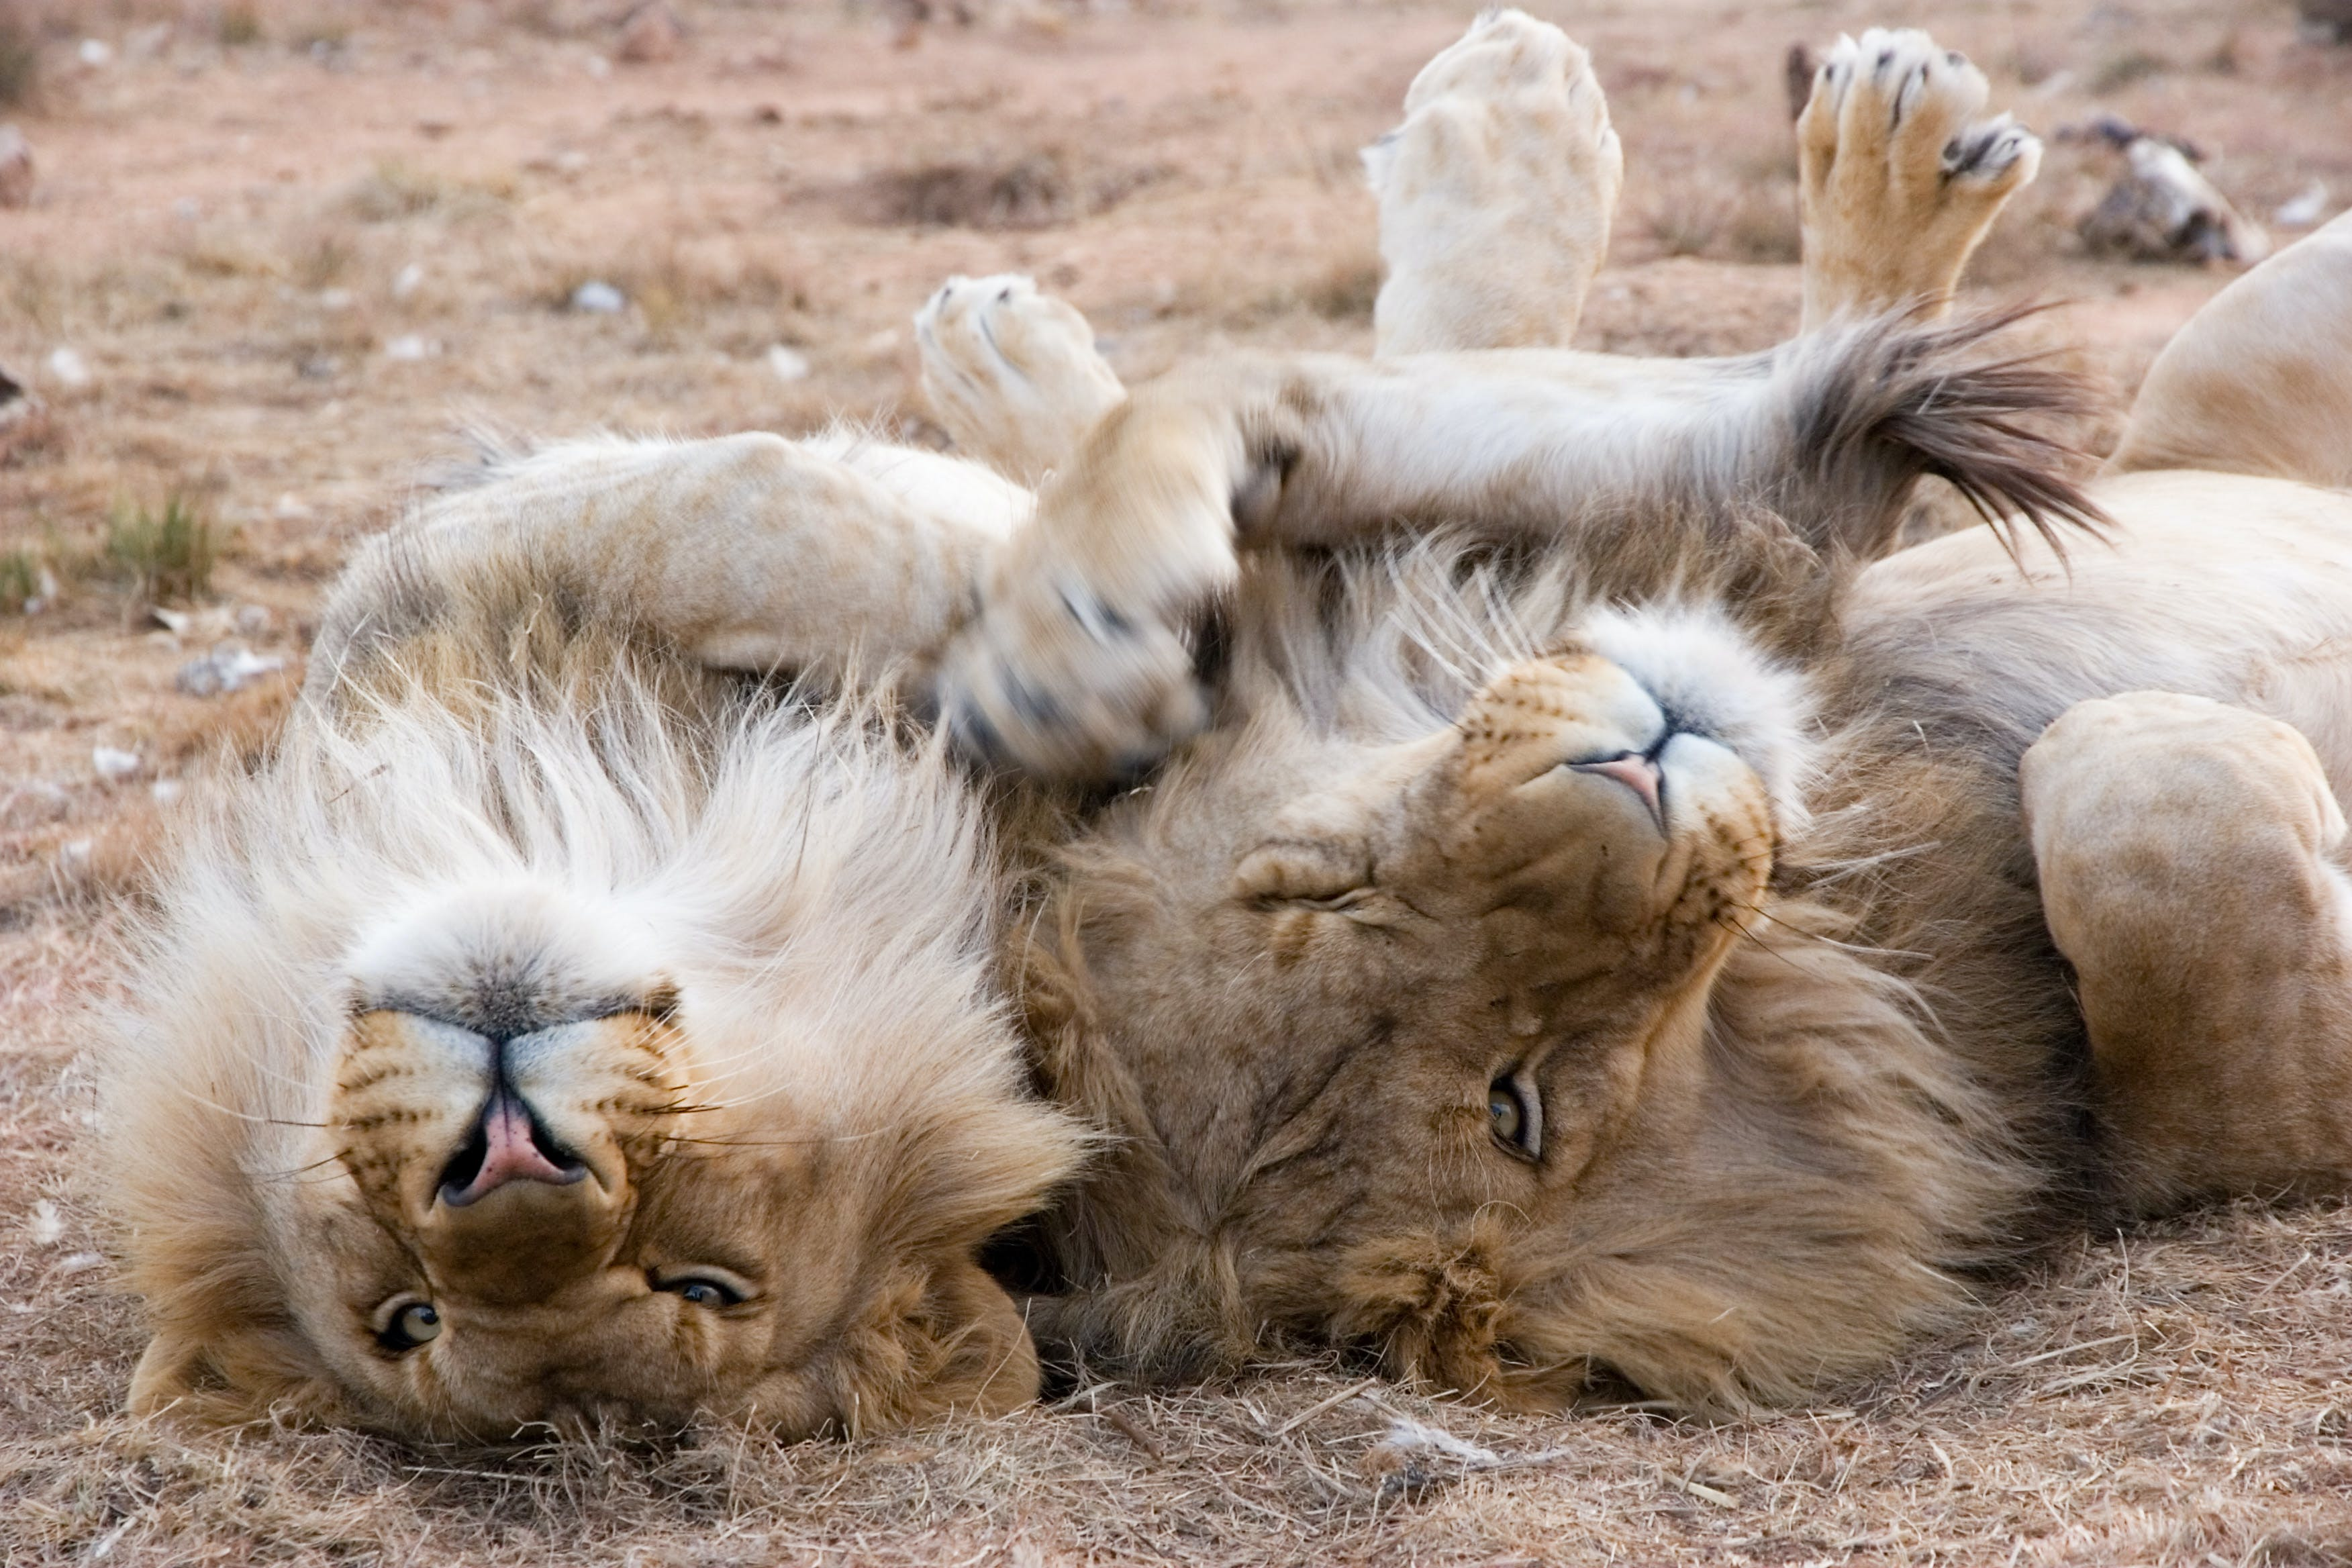 Two Gray Lions Laying on Sand